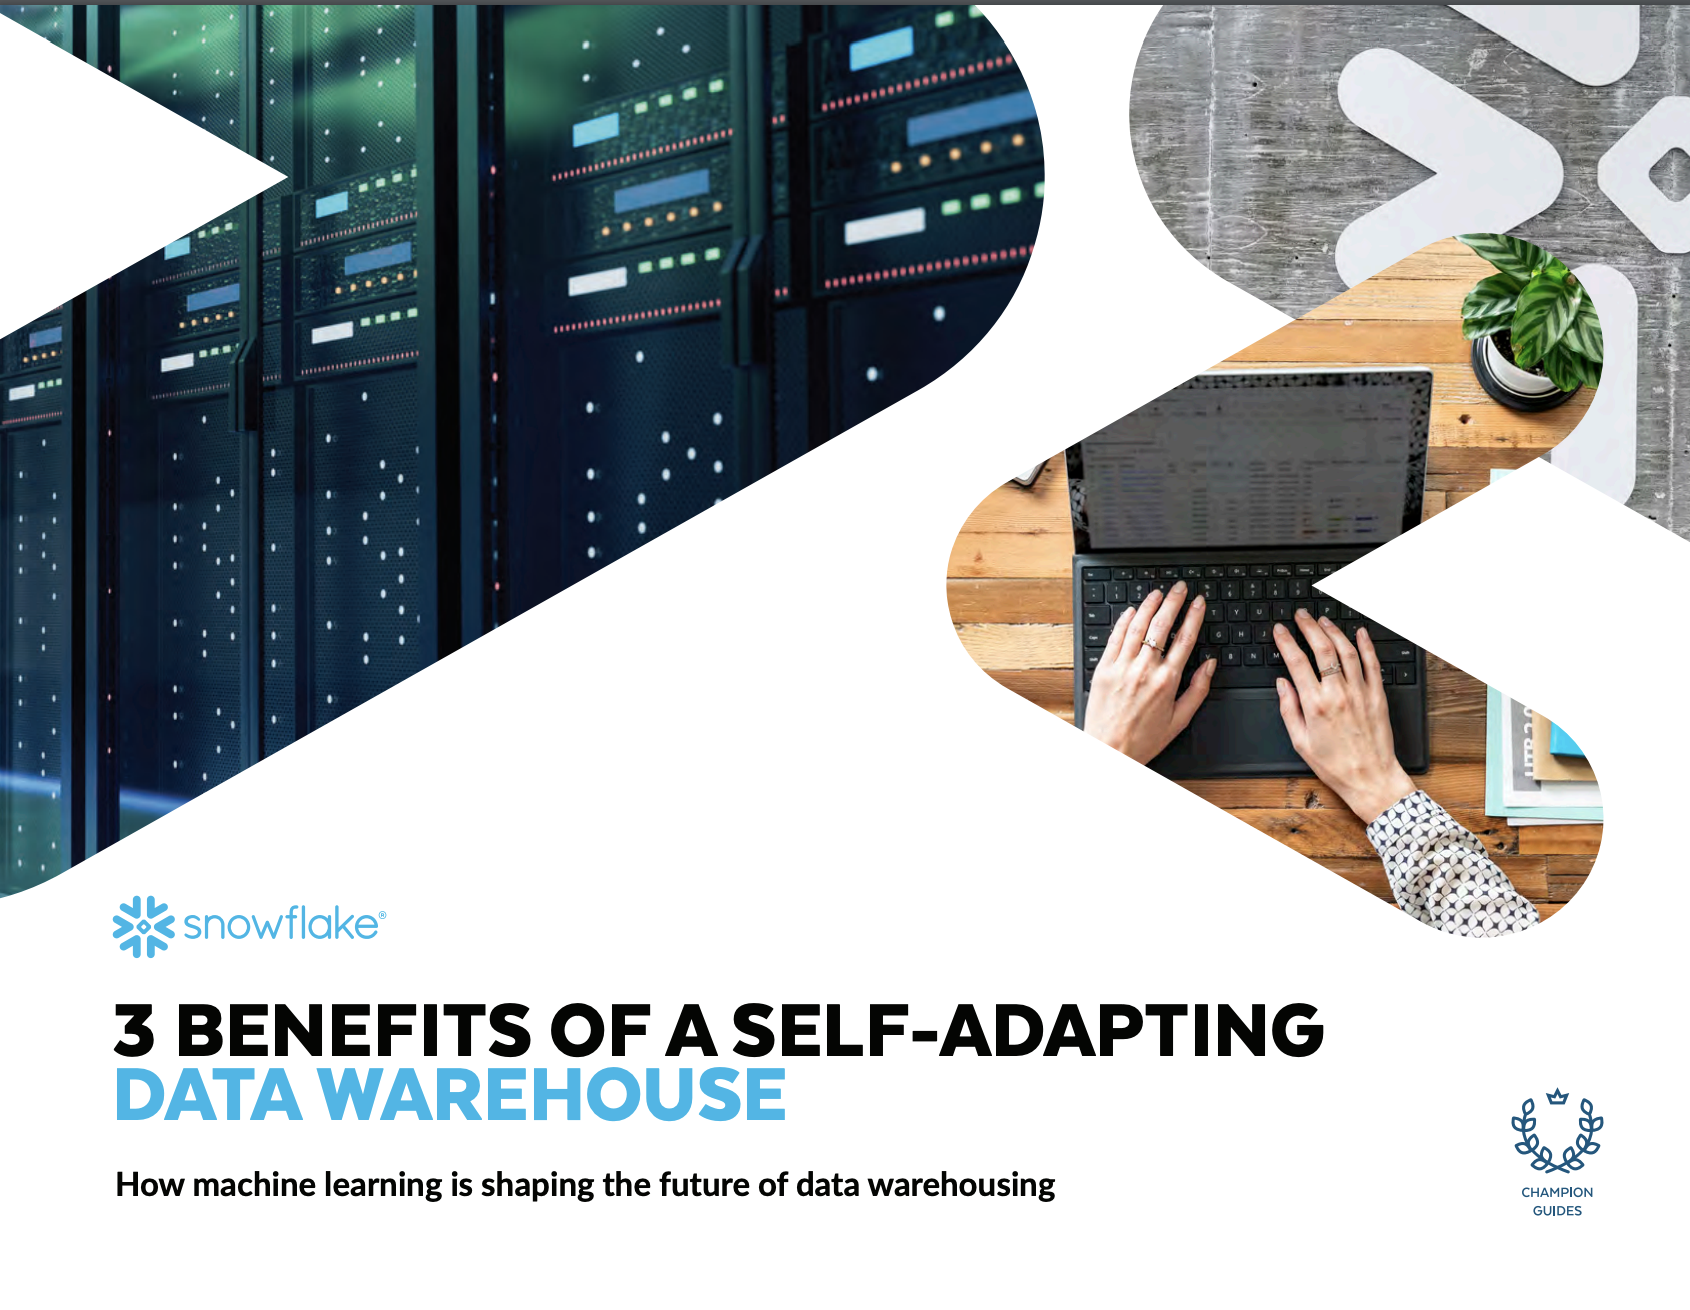 Snowflake: 3 Benefits of a Self-Adapting Data Warehouse